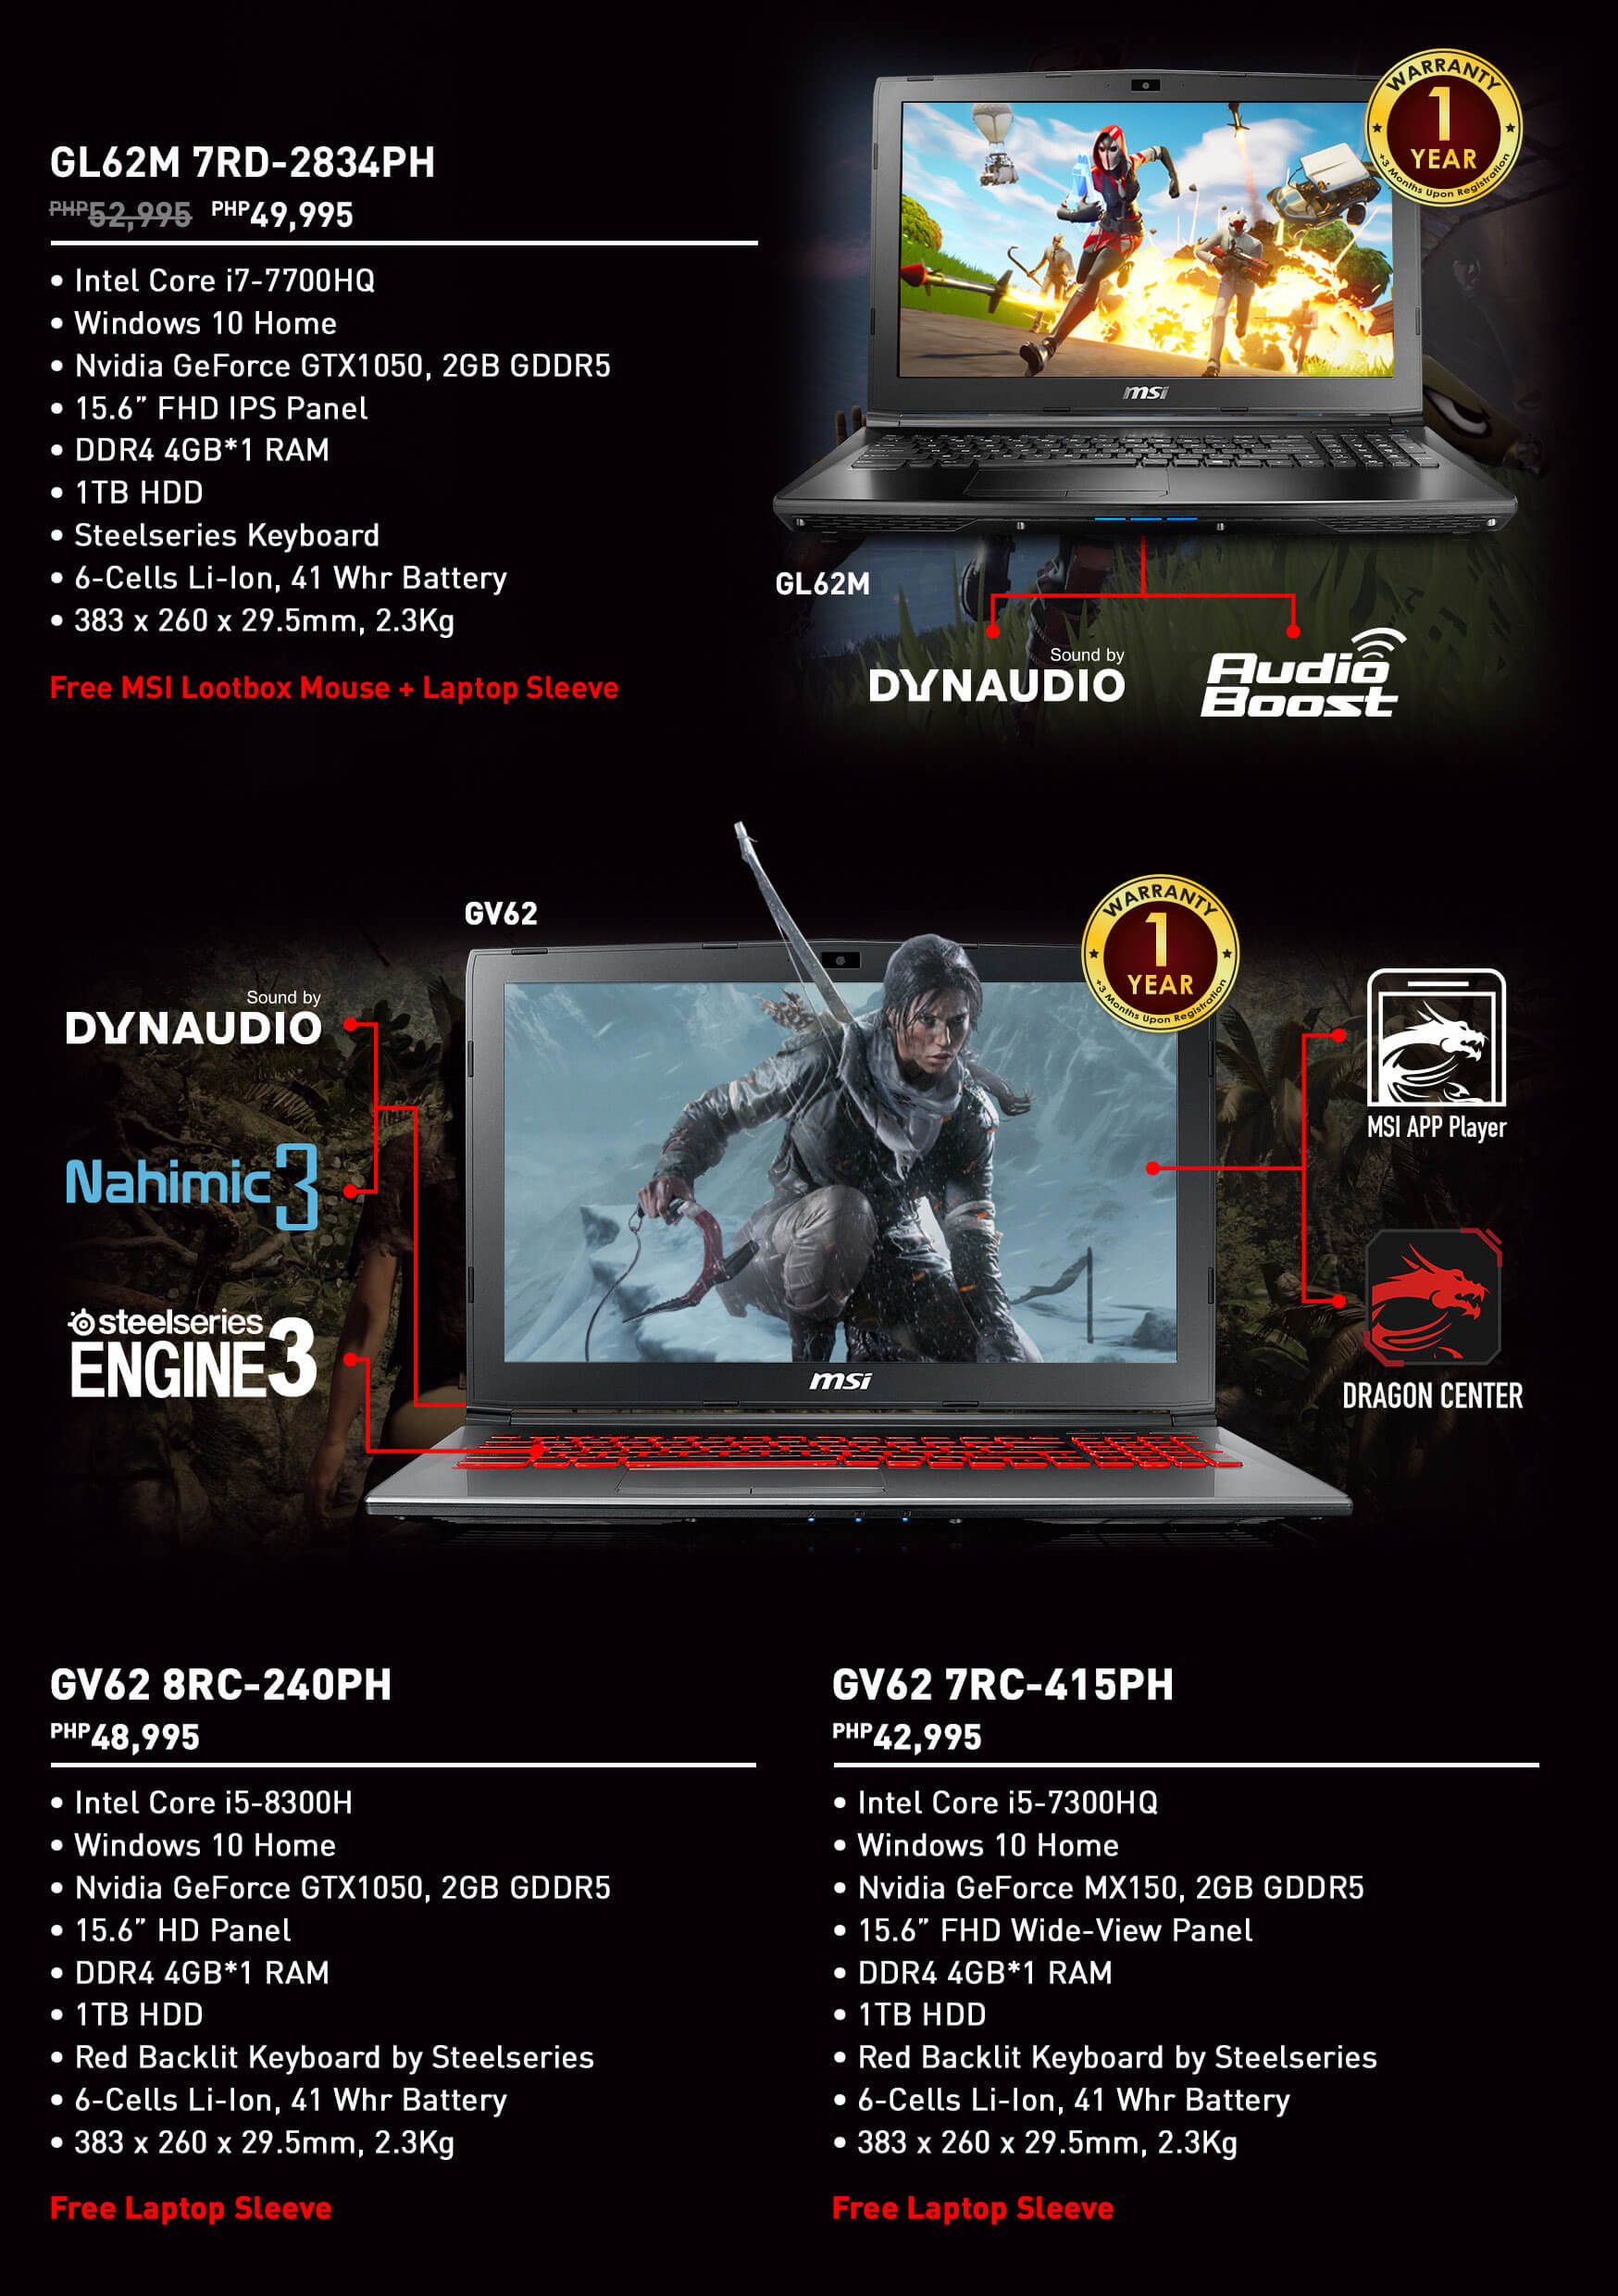 msi ready set game promo, MSI Announces Ready. Set. Game Promo!, Gadget Pilipinas